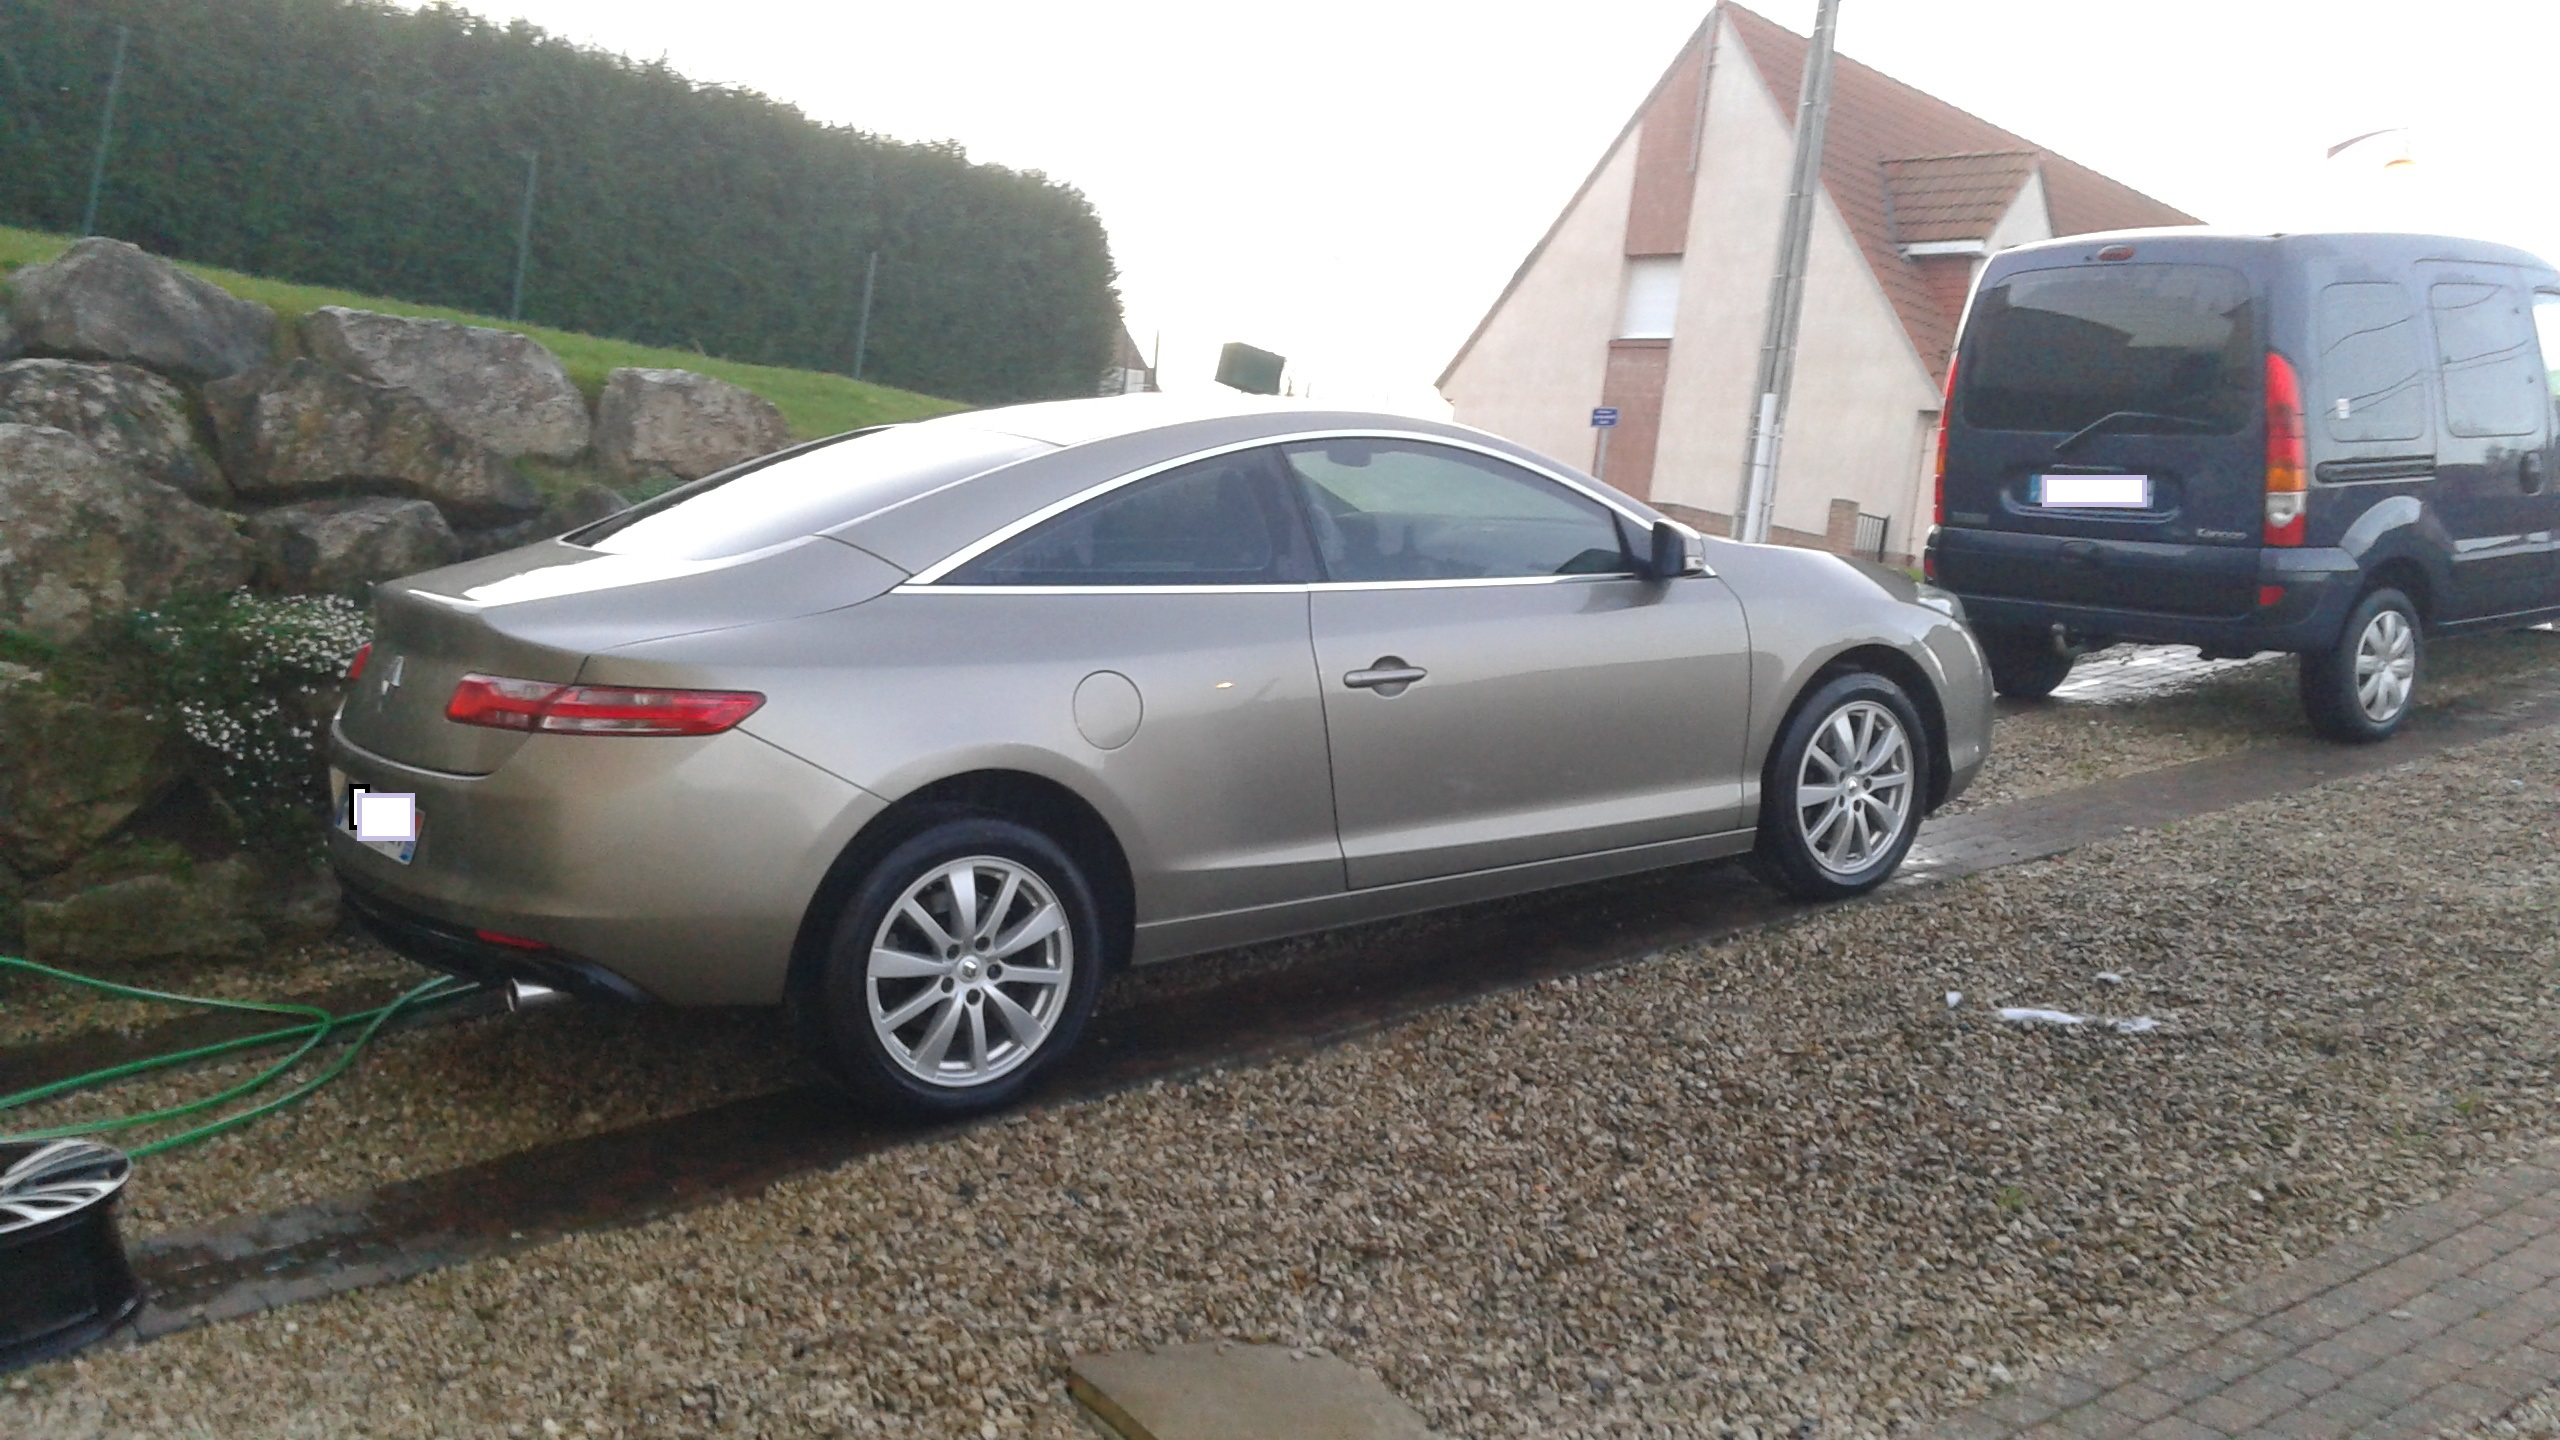 [nathanjo] Laguna III coupé initiale 3.0 dCi 235 - Page 2 20160116171819